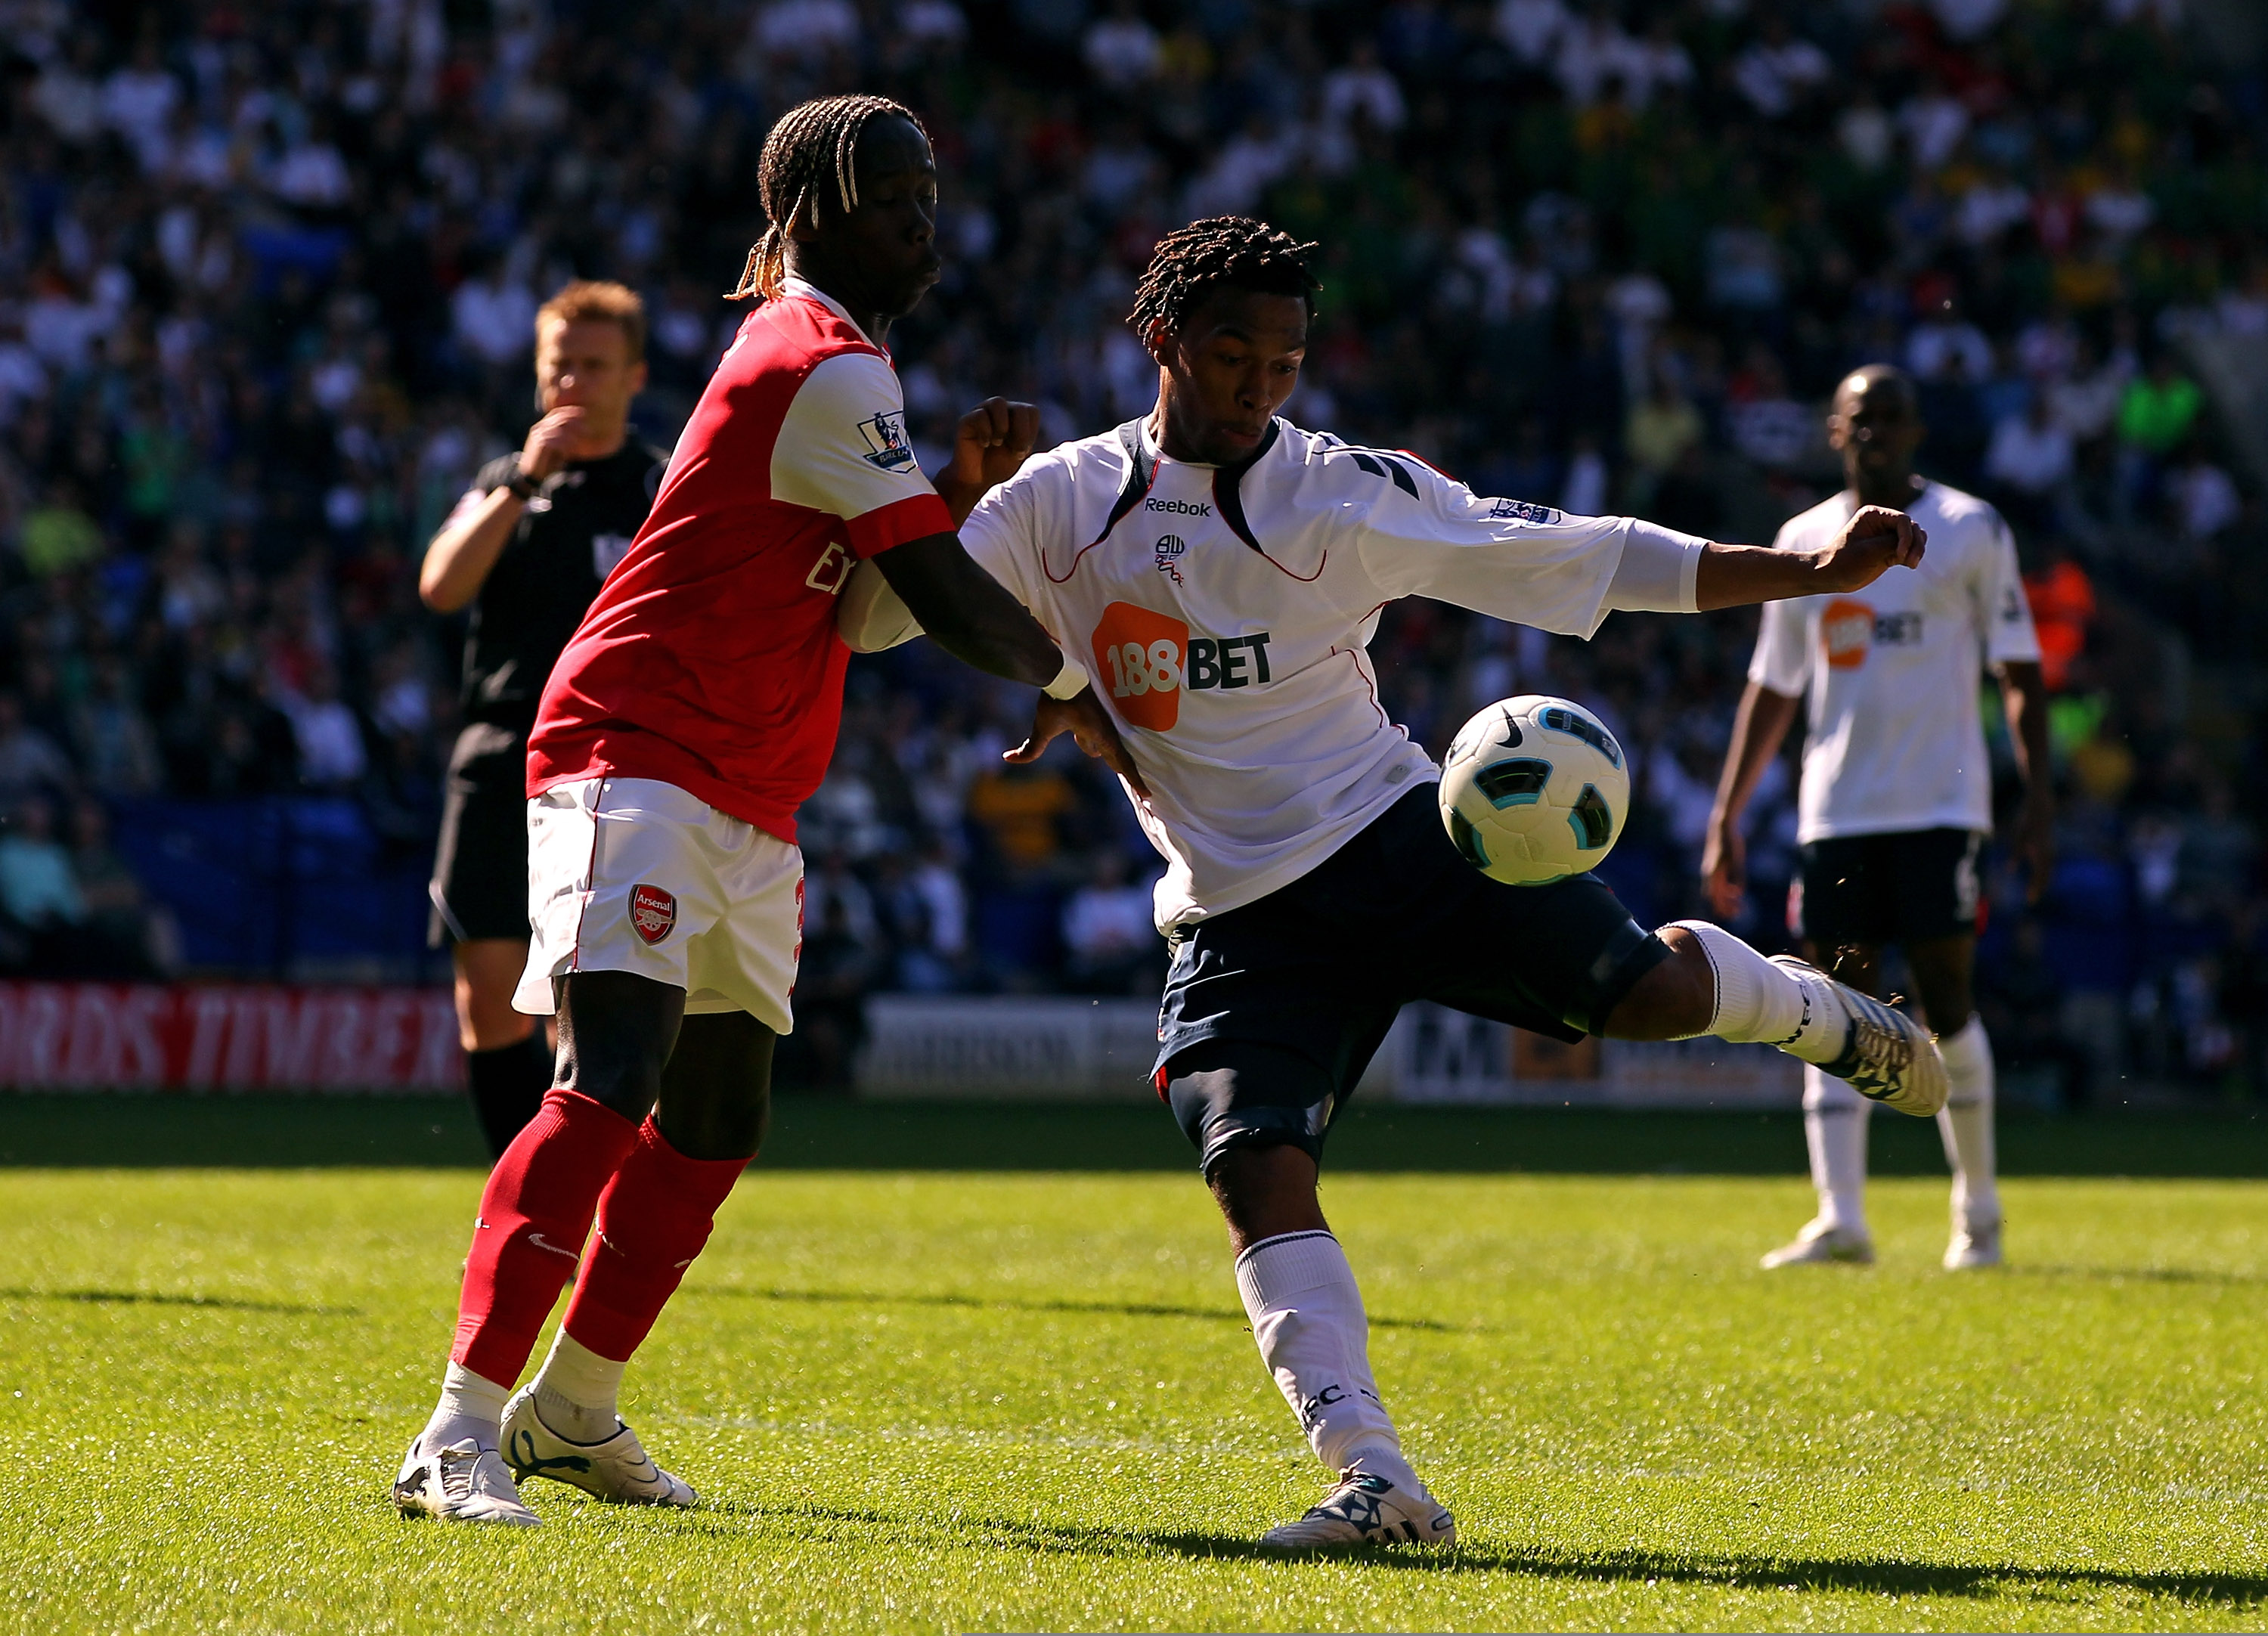 BOLTON, ENGLAND - APRIL 24:  Daniel Sturridge of Bolton Wanderers shoots under pressure from Bacary Sagna of Arsenal during the Barclays Premier League match between Bolton Wanderers and Arsenal at the Reebok Stadium on April 24, 2011 in Bolton, England.